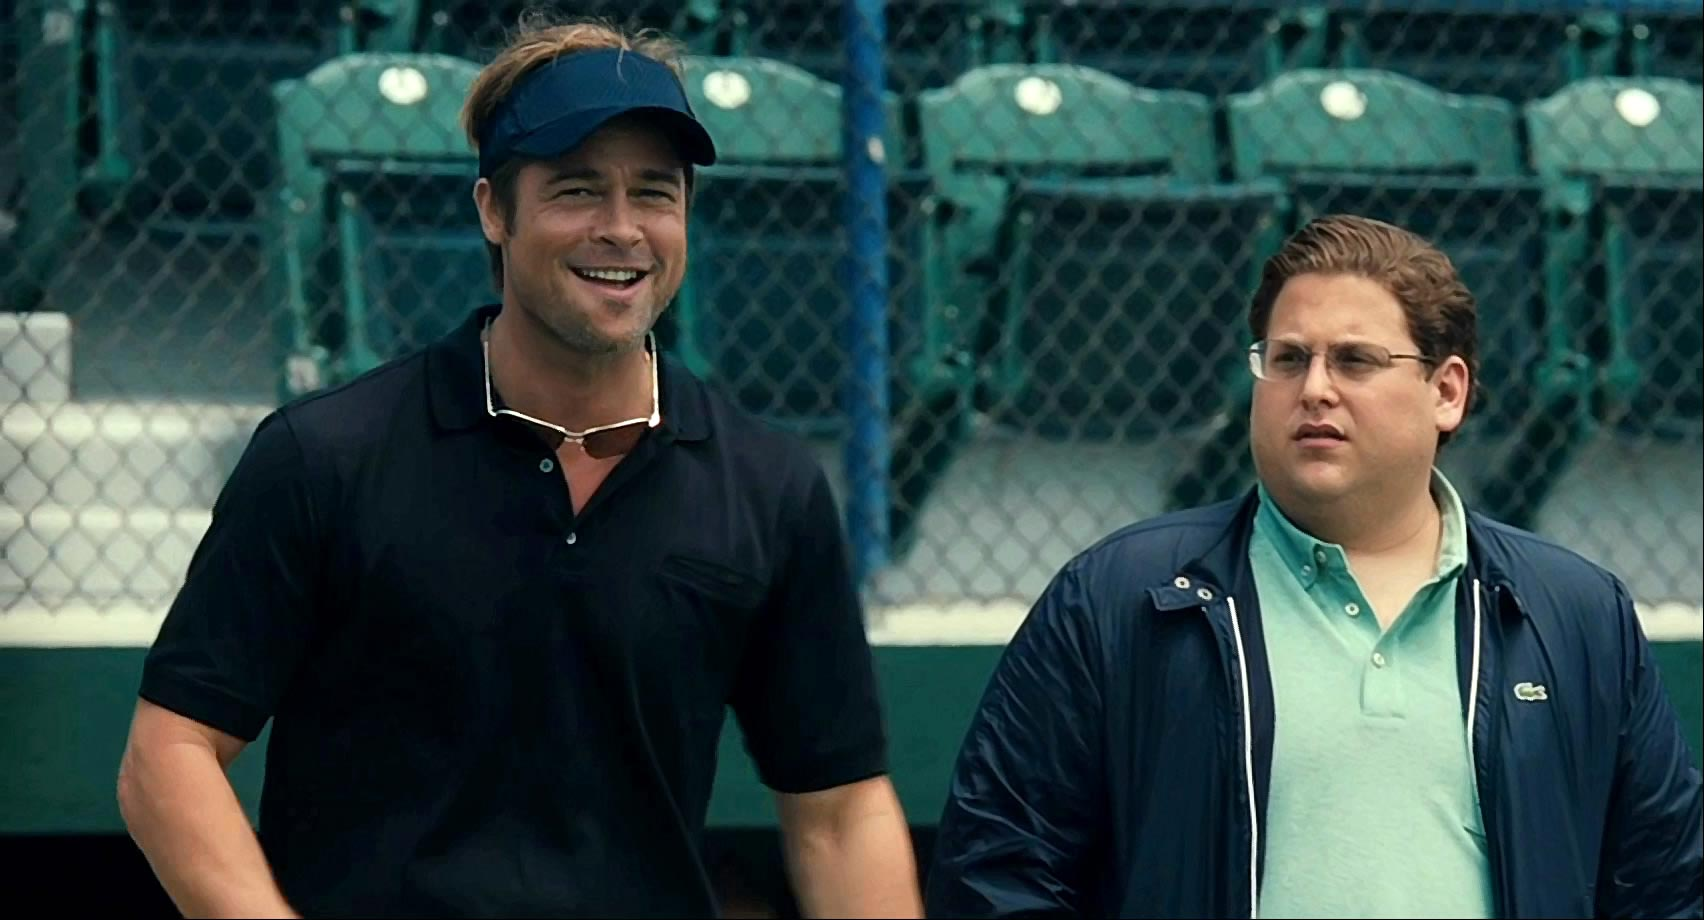 Brad Pitt and Jonah Hill in the movie Moneyball